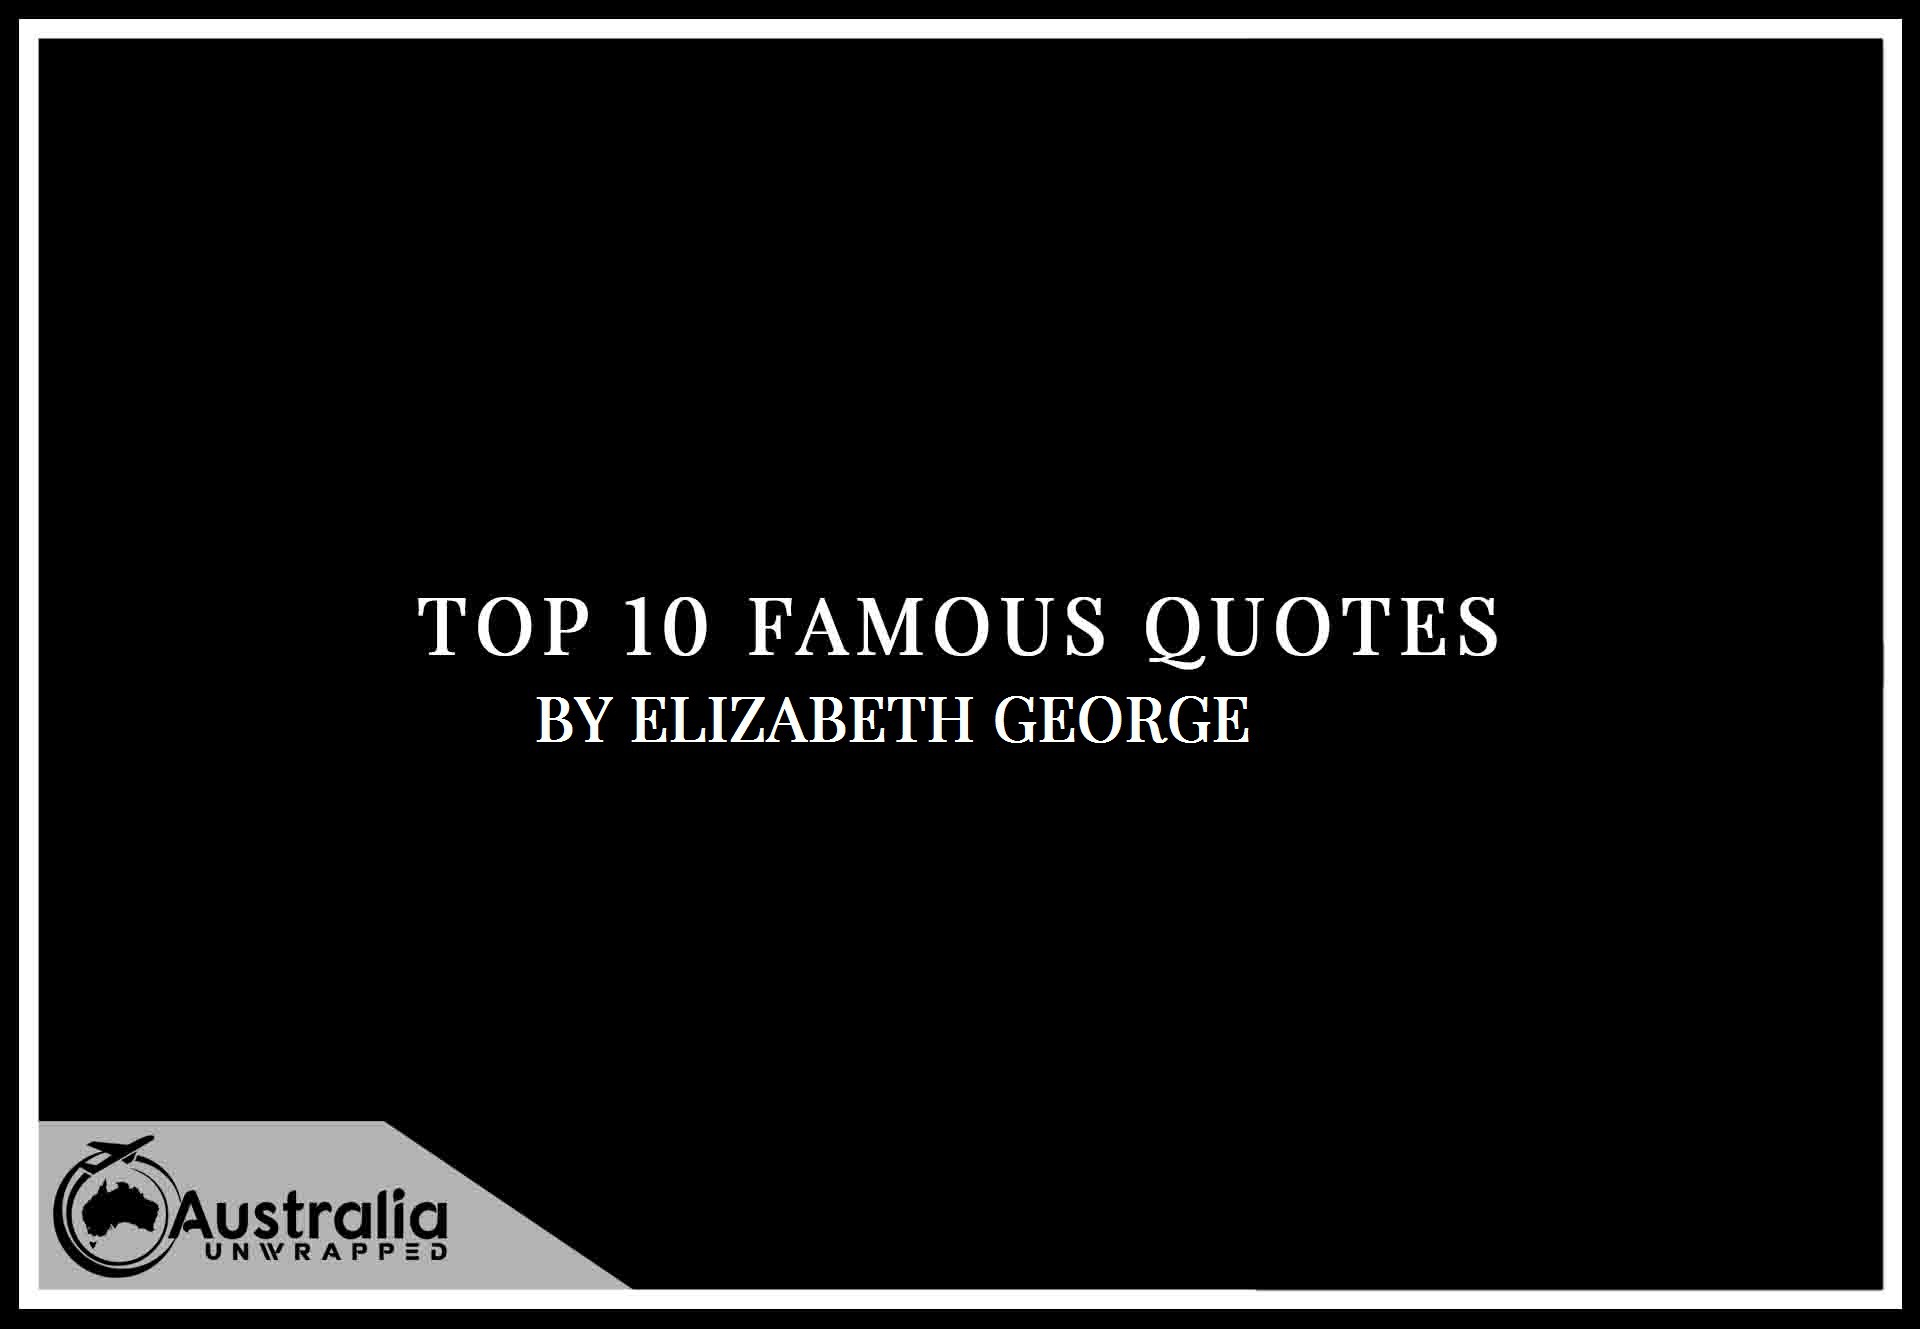 Elizabeth George's Top 10 Popular and Famous Quotes